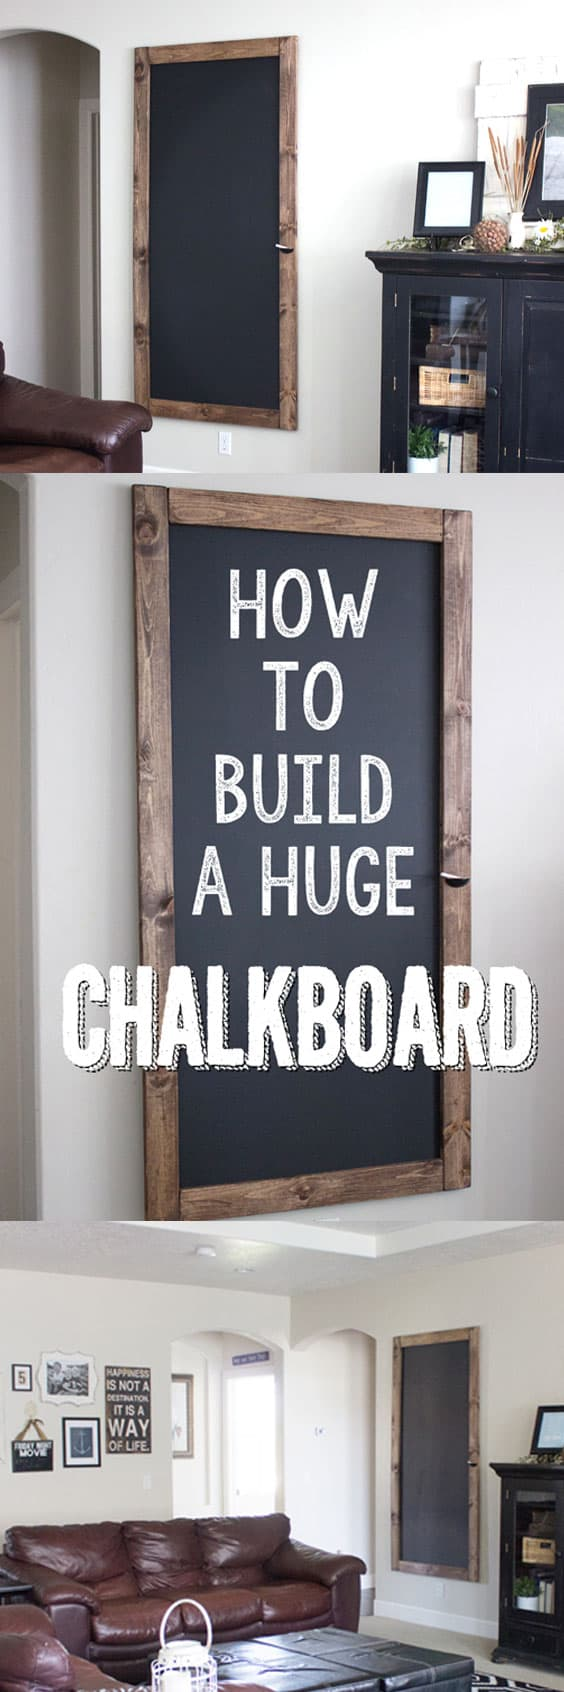 How to Build a Huge Chalkboard for CHEAP! This step-by-step tutorial is so great and makes this tutorial work for DIY's of all levels! From overthebigmoon.com!